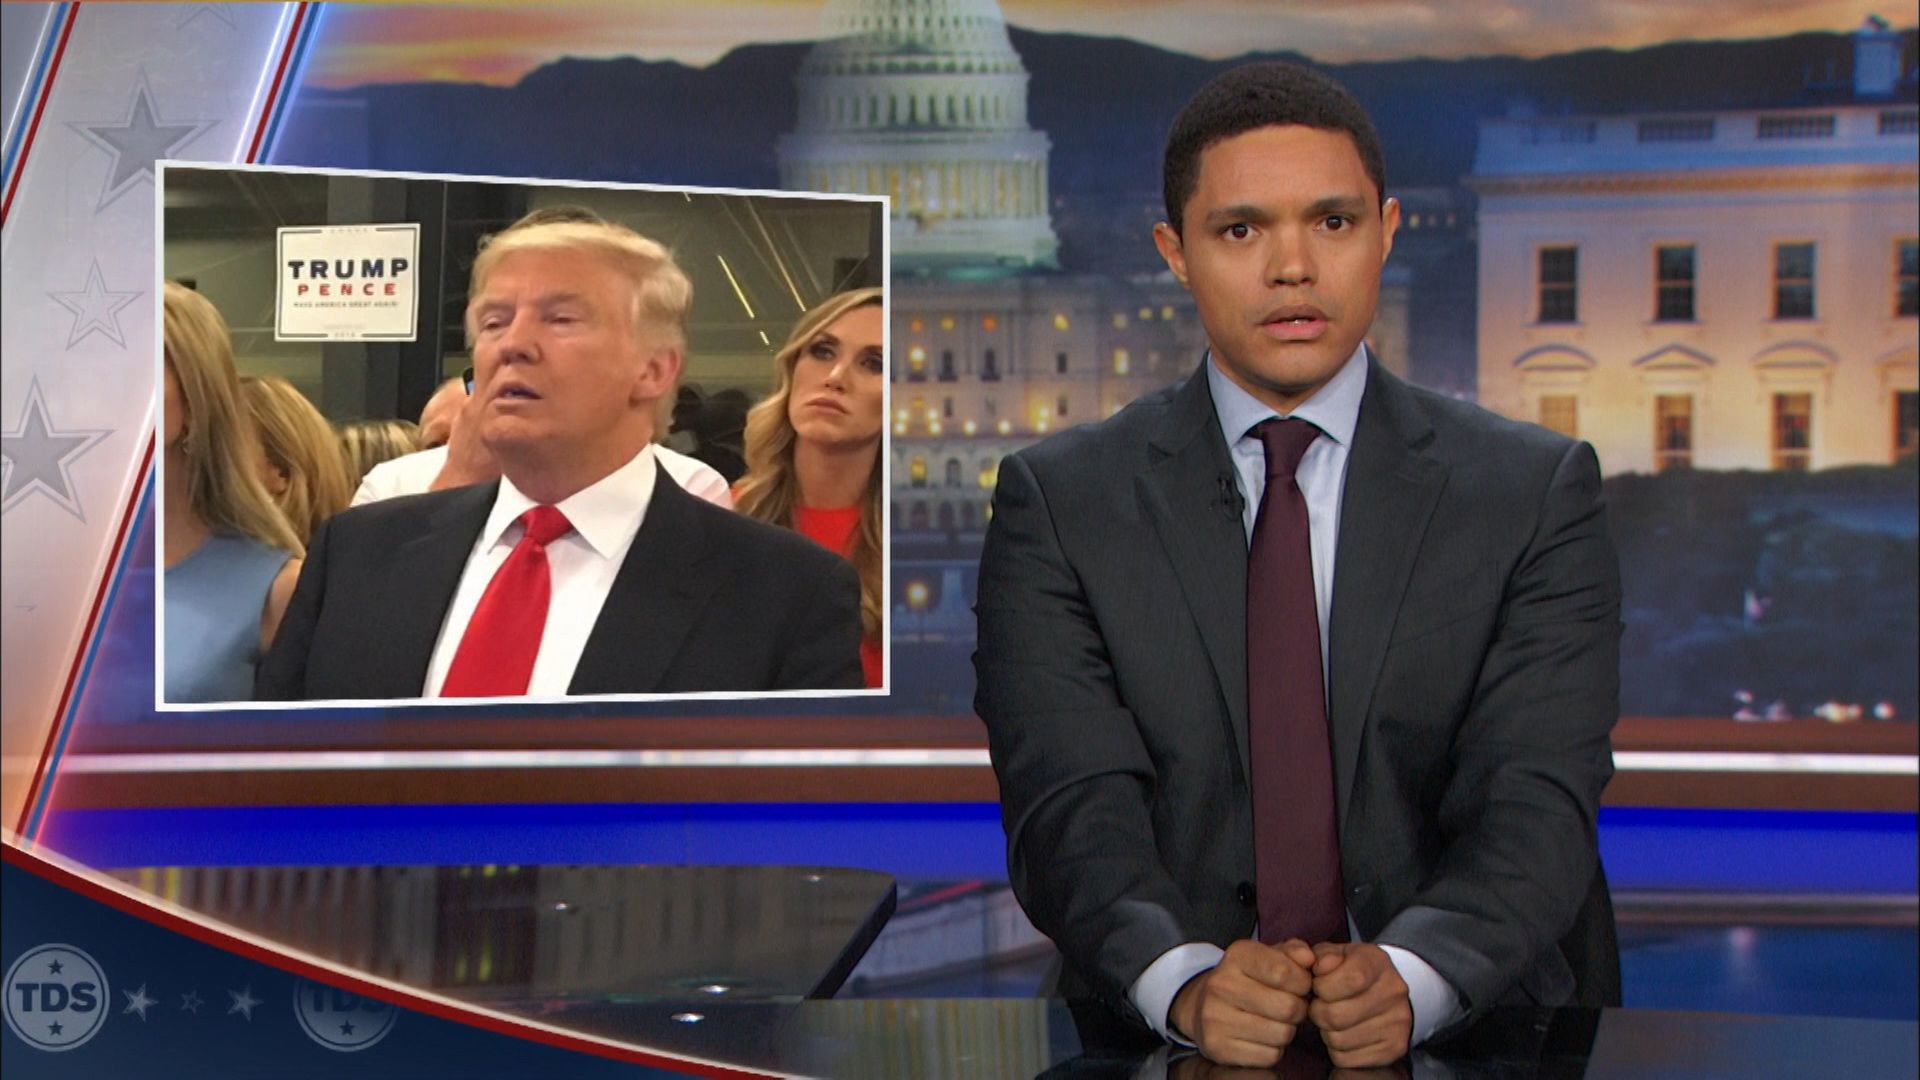 The 2016 Election Wrap-Up - The Daily Show with Trevor Noah (Video Clip)